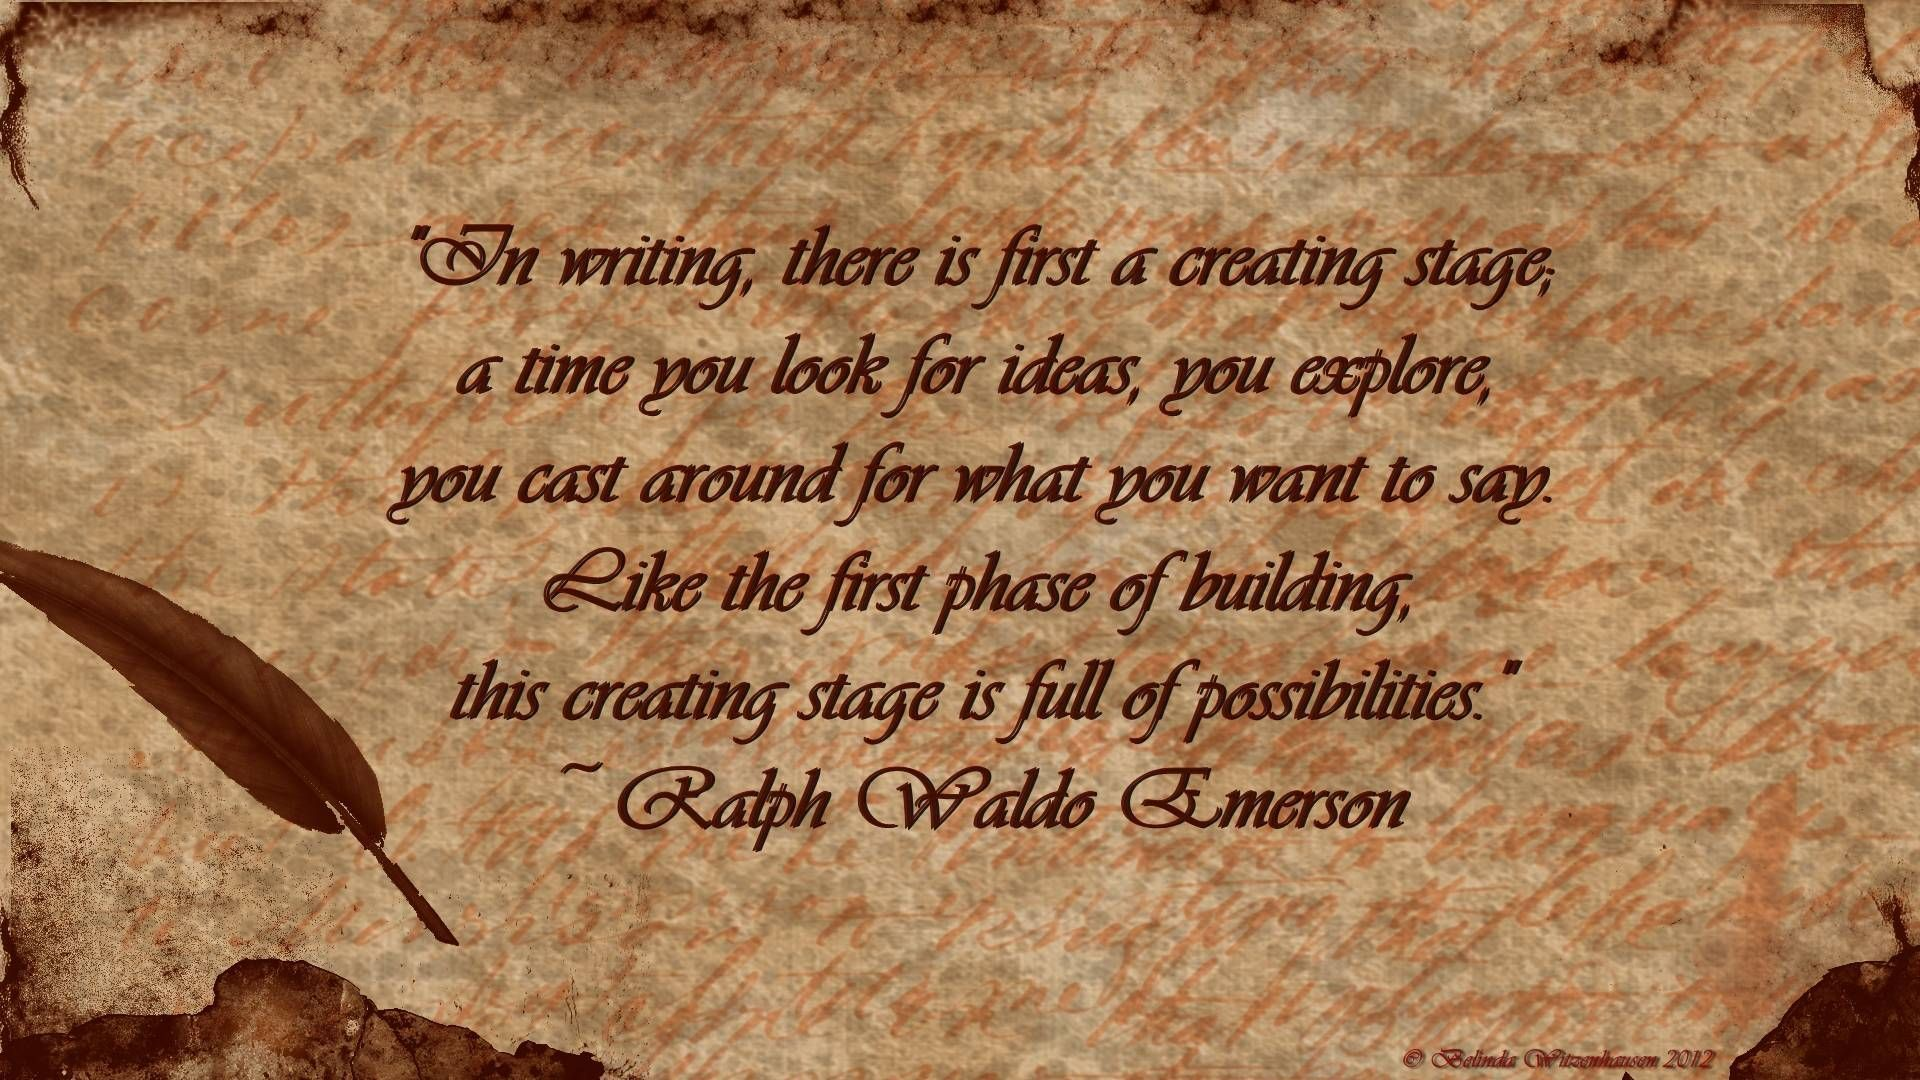 Wallpaper Writing Writing Desktop Wallpapers Top Free Writing Desktop Backgrounds